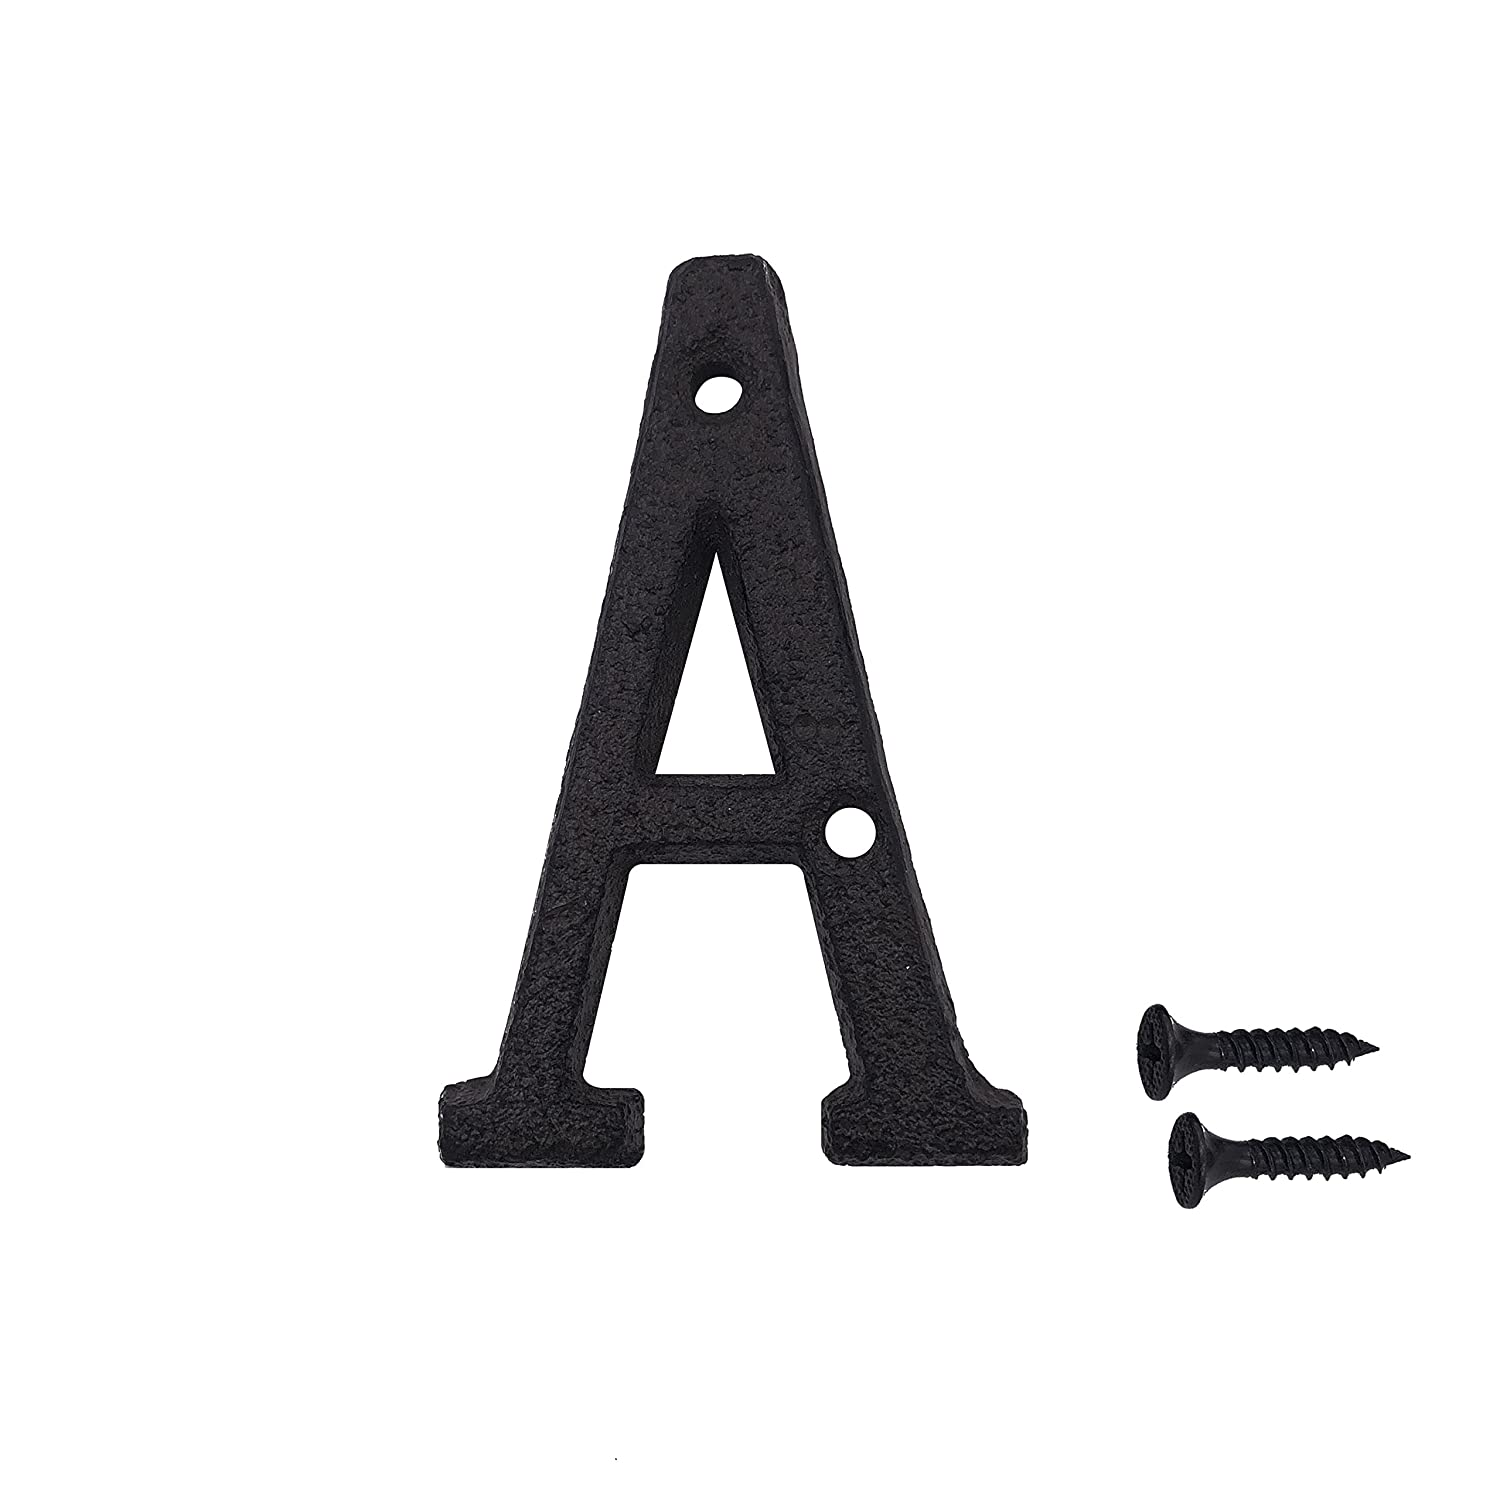 3 Inch Wrought Iron House Number, Matching Screws Included Black Letter A TripDock TD-HOUSE070612